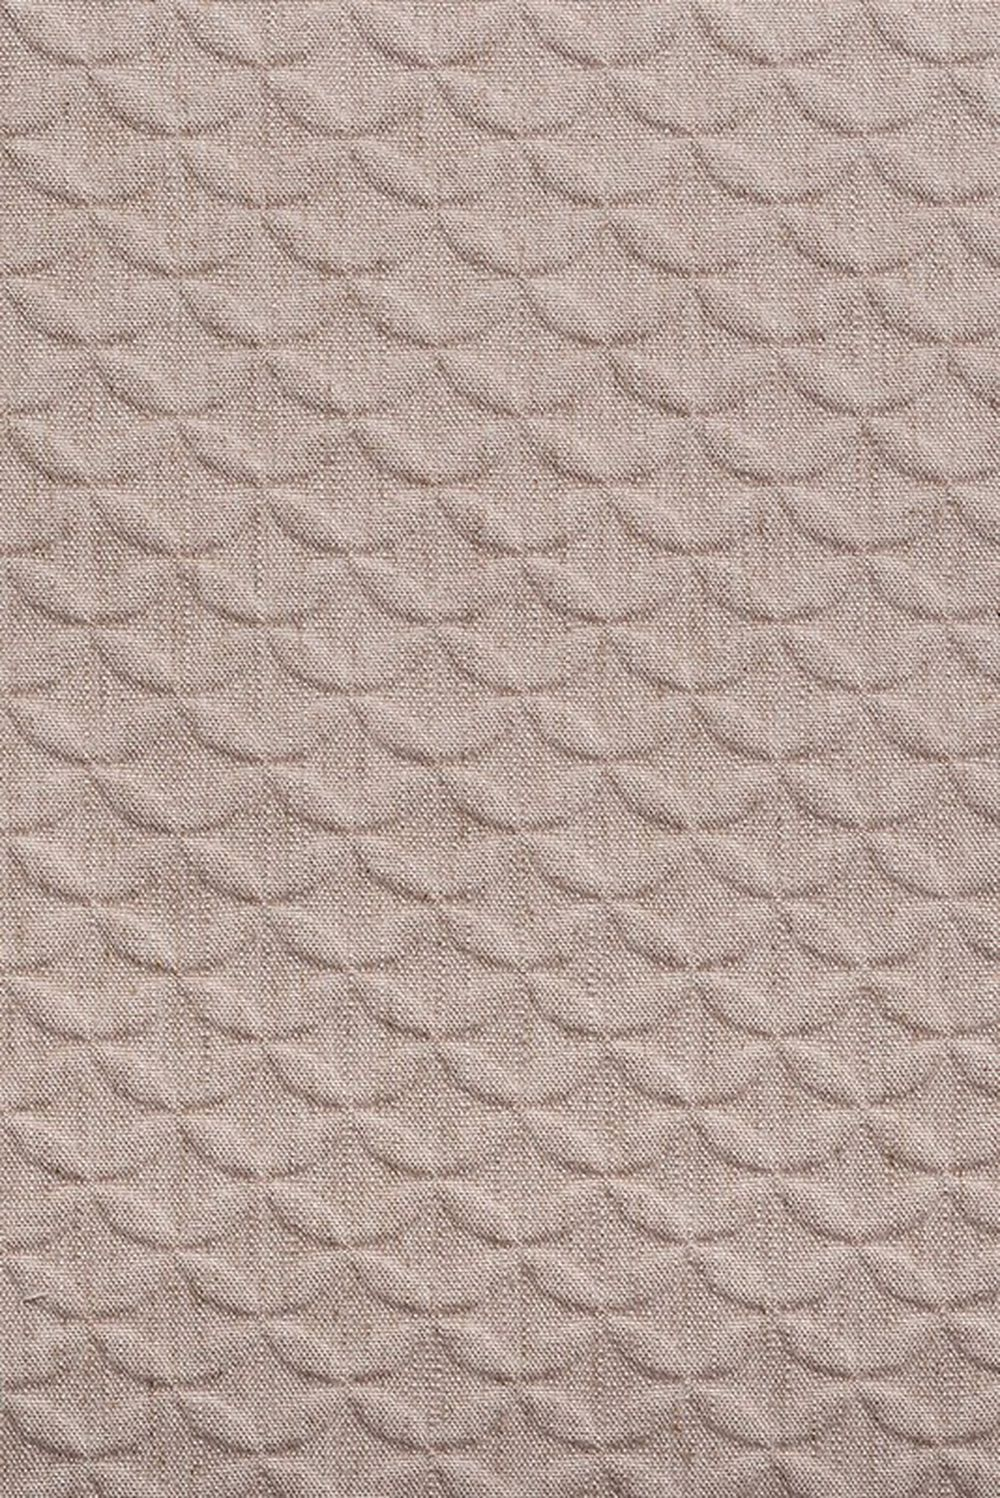 Photo of the fabric Topiary Blush swatch by Mokum. Use for Upholstery Heavy Duty, Accessory. Style of Geometric, Pattern